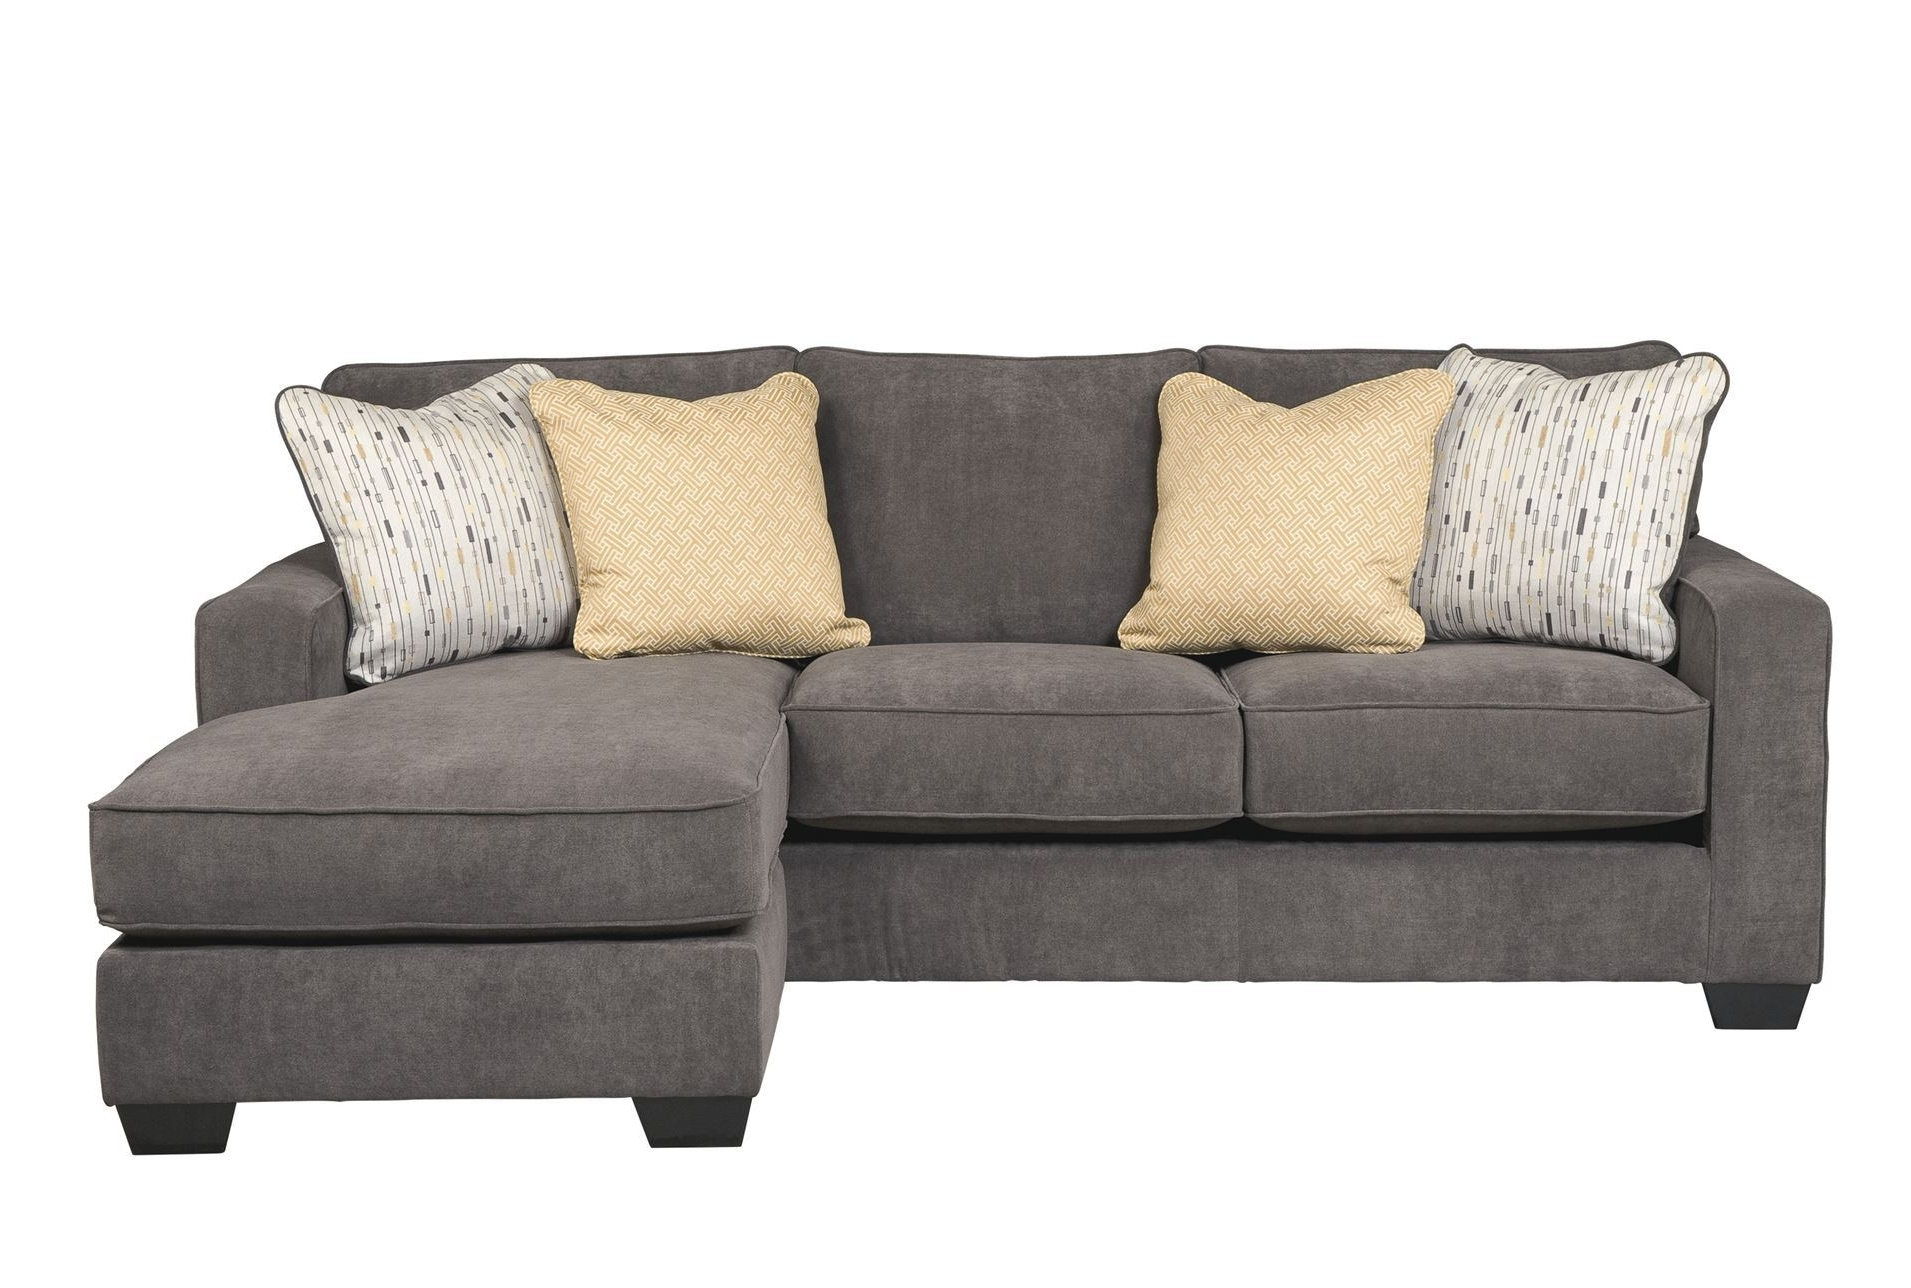 Apartment Size Sectional Sofa With Chaise Cheap Sectional Sofas Intended For Widely Used Small Chaise Sofas (View 6 of 15)